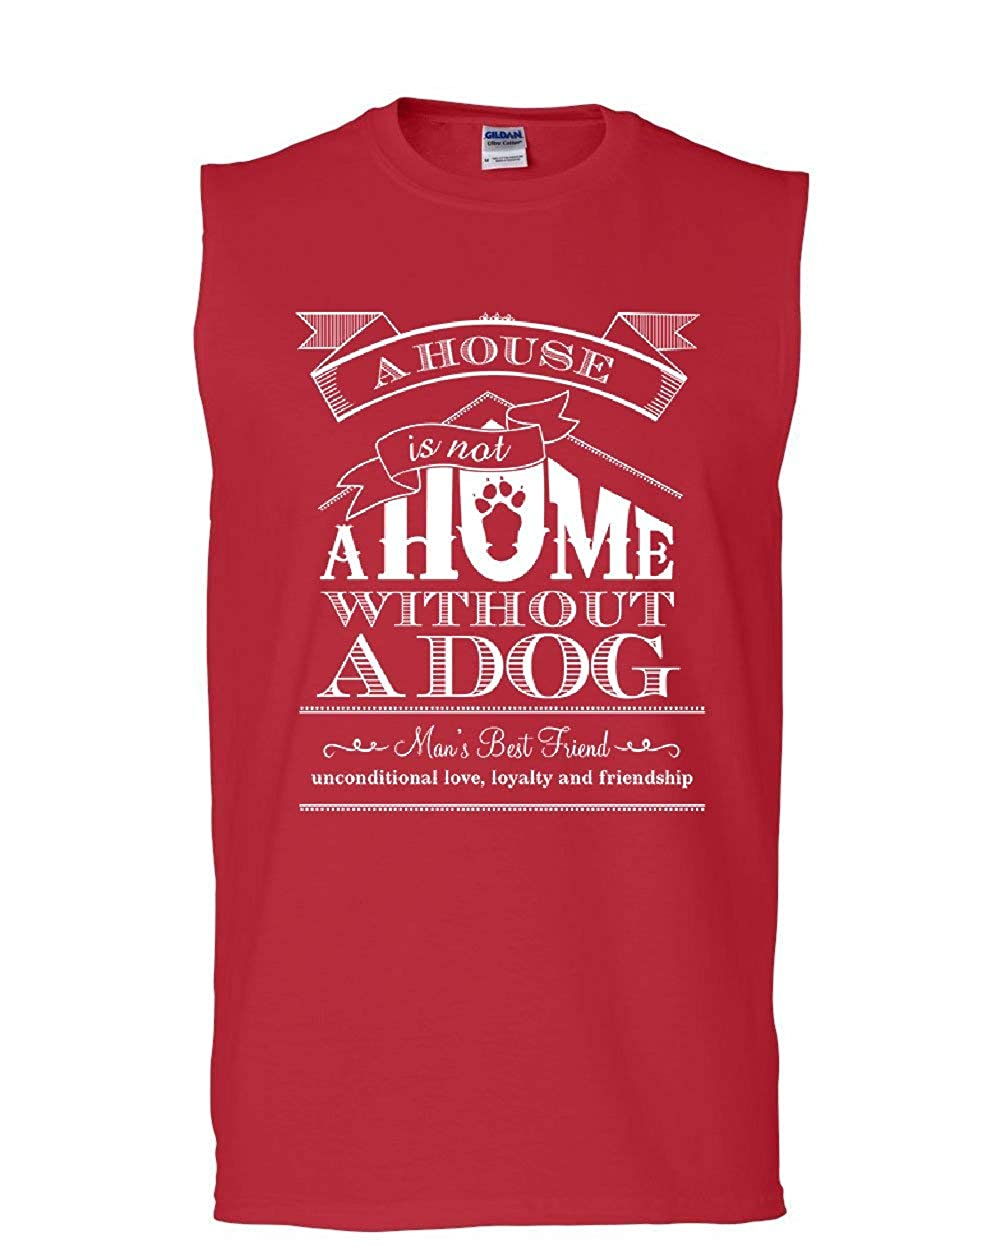 A House is Not a Home Without a Dog Muscle Shirt Pet Paw Labrador Sleeveless